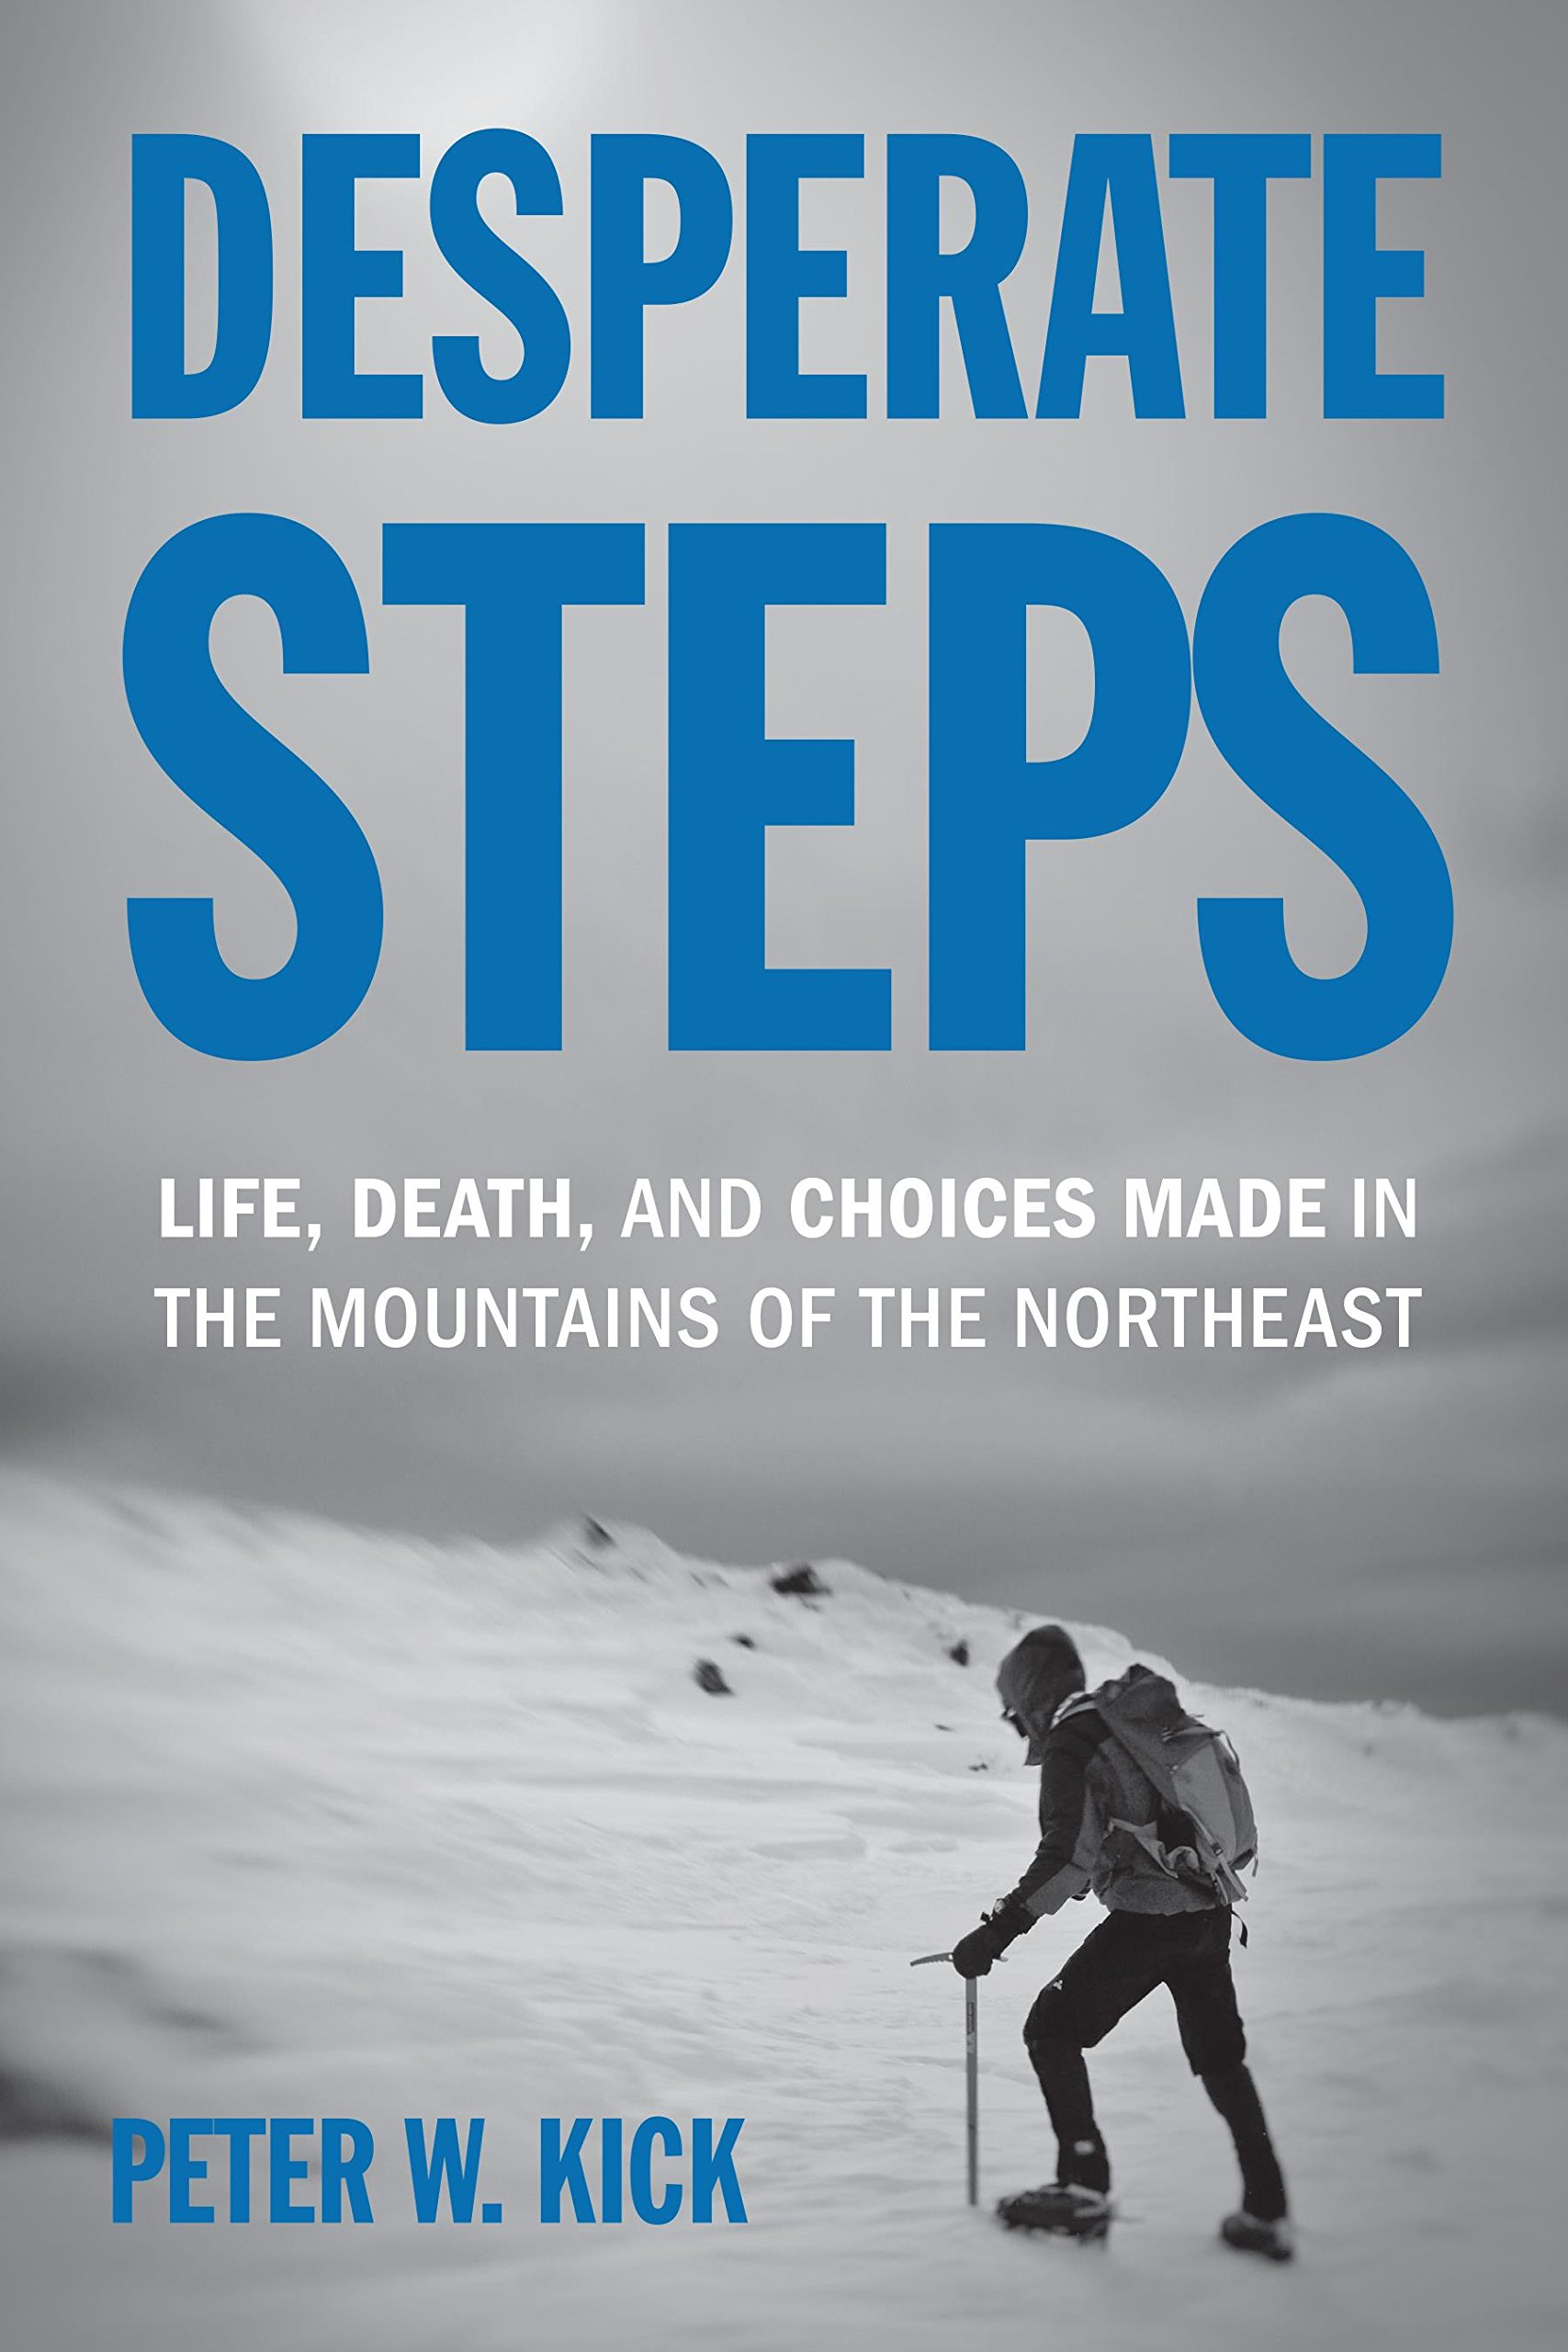 Desperate Steps: Life, Death, and Choices Made in the Mountains of the Northeast by Appalachian Mountain Club